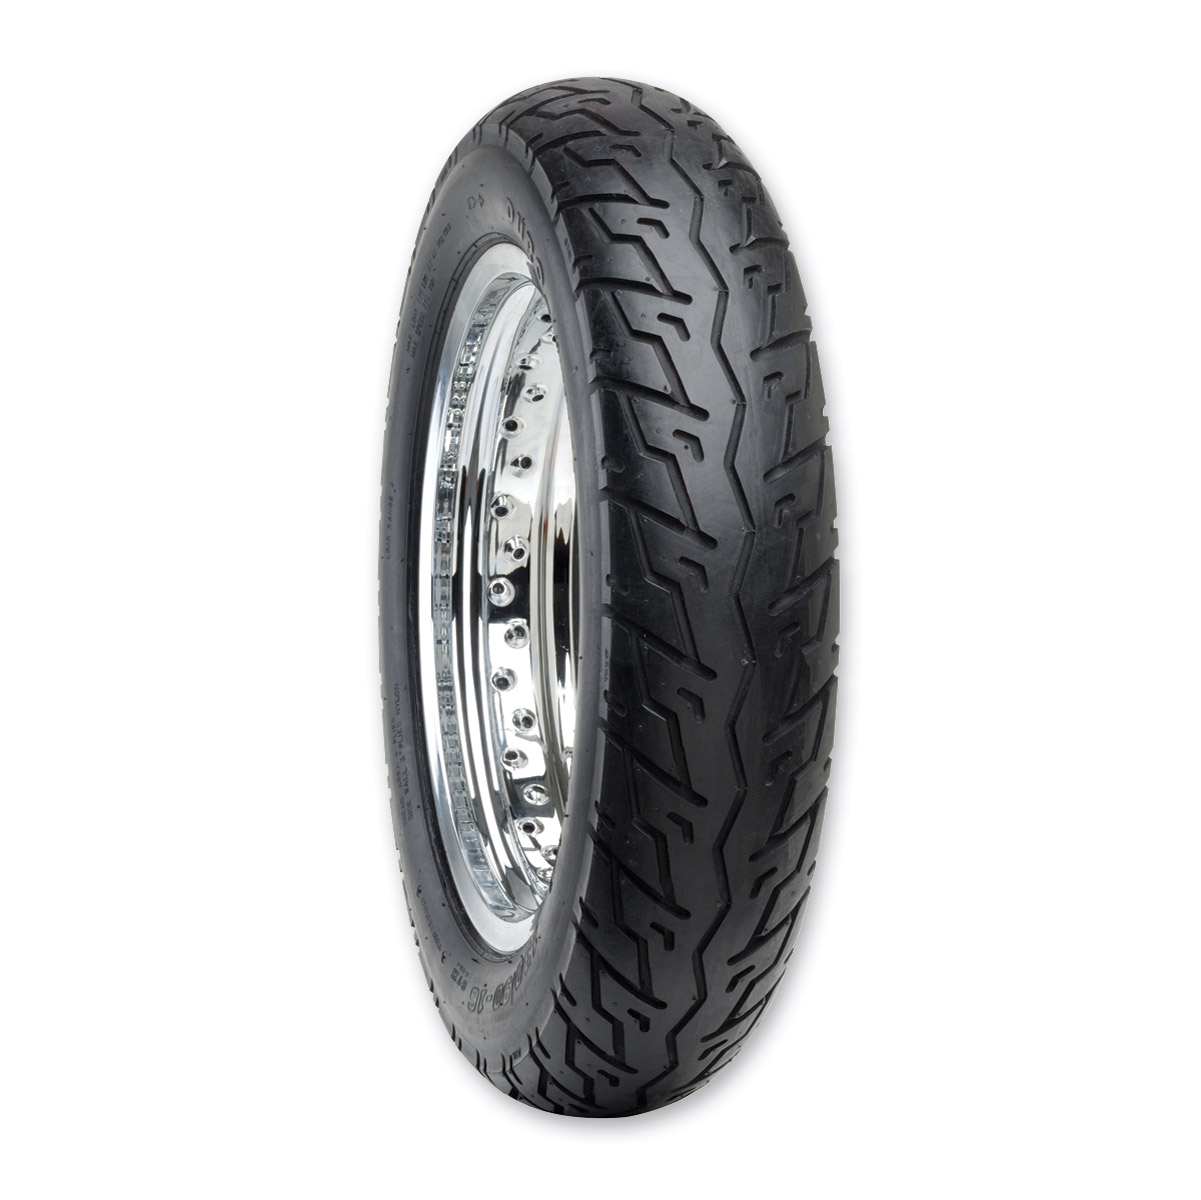 Duro HF261A Excursion 100/90-18 Front/Rear Tire